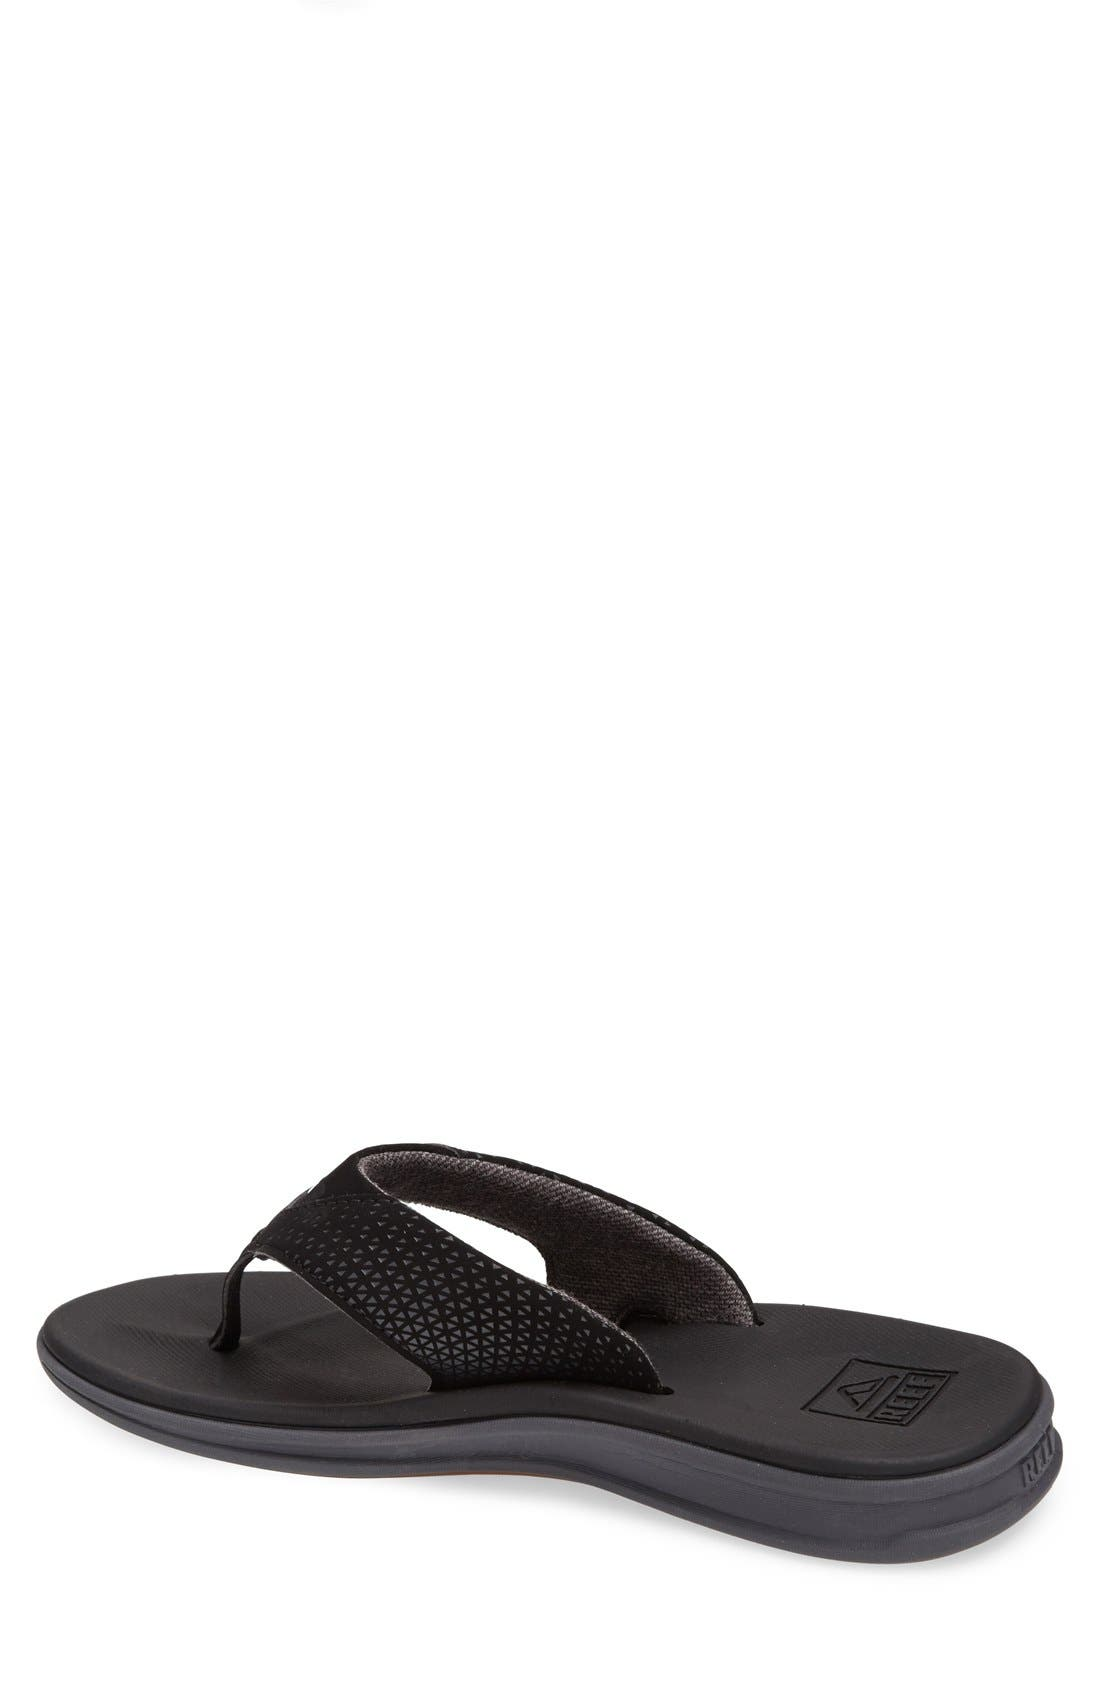 'Rover' Flip Flop,                             Alternate thumbnail 2, color,                             Black